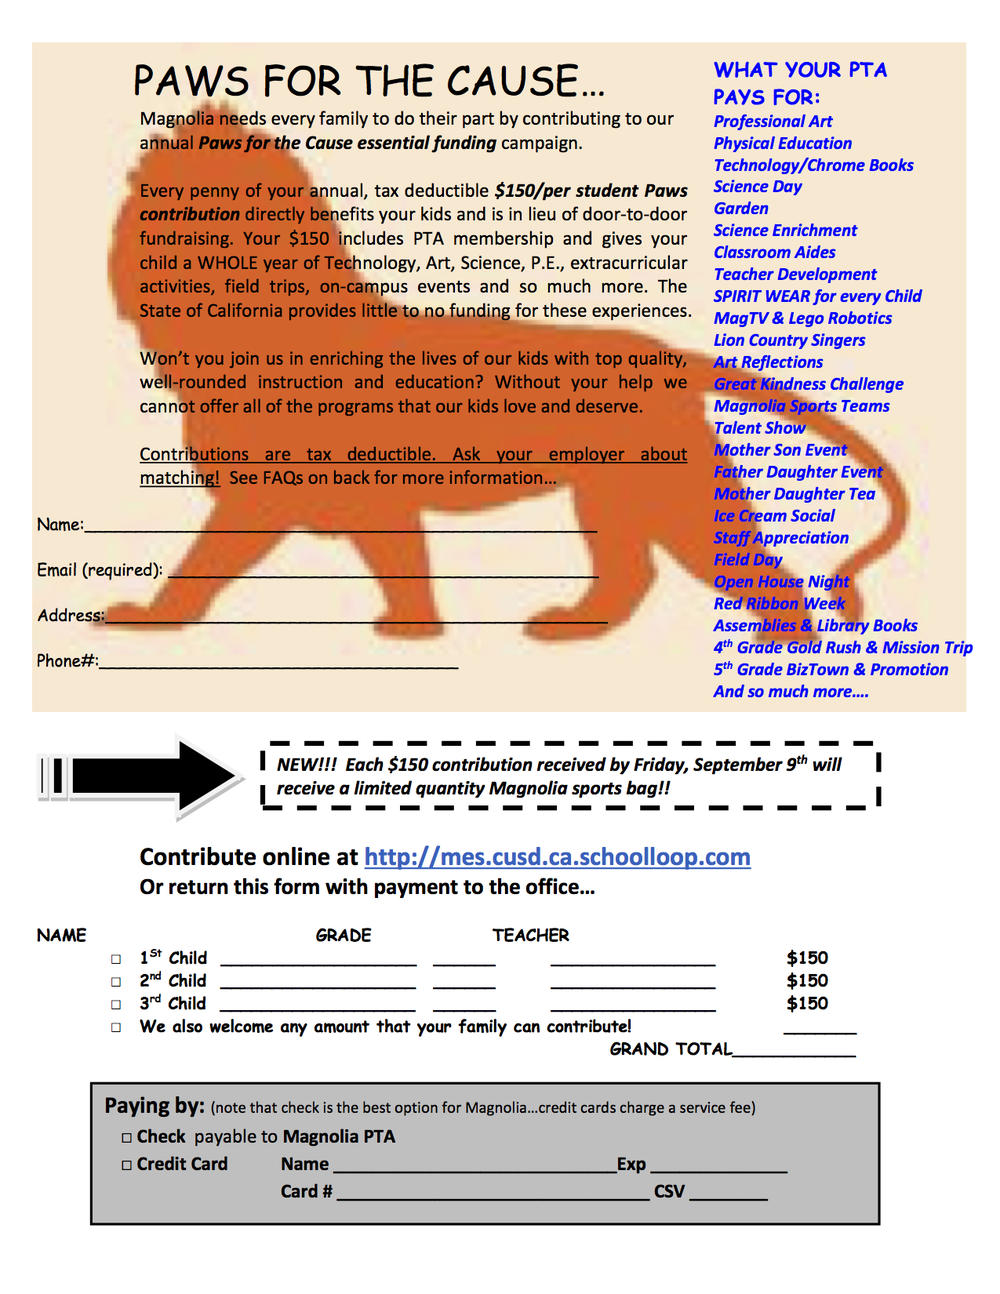 2016-17 Paws for the Cause New Form with Incentive.jpg